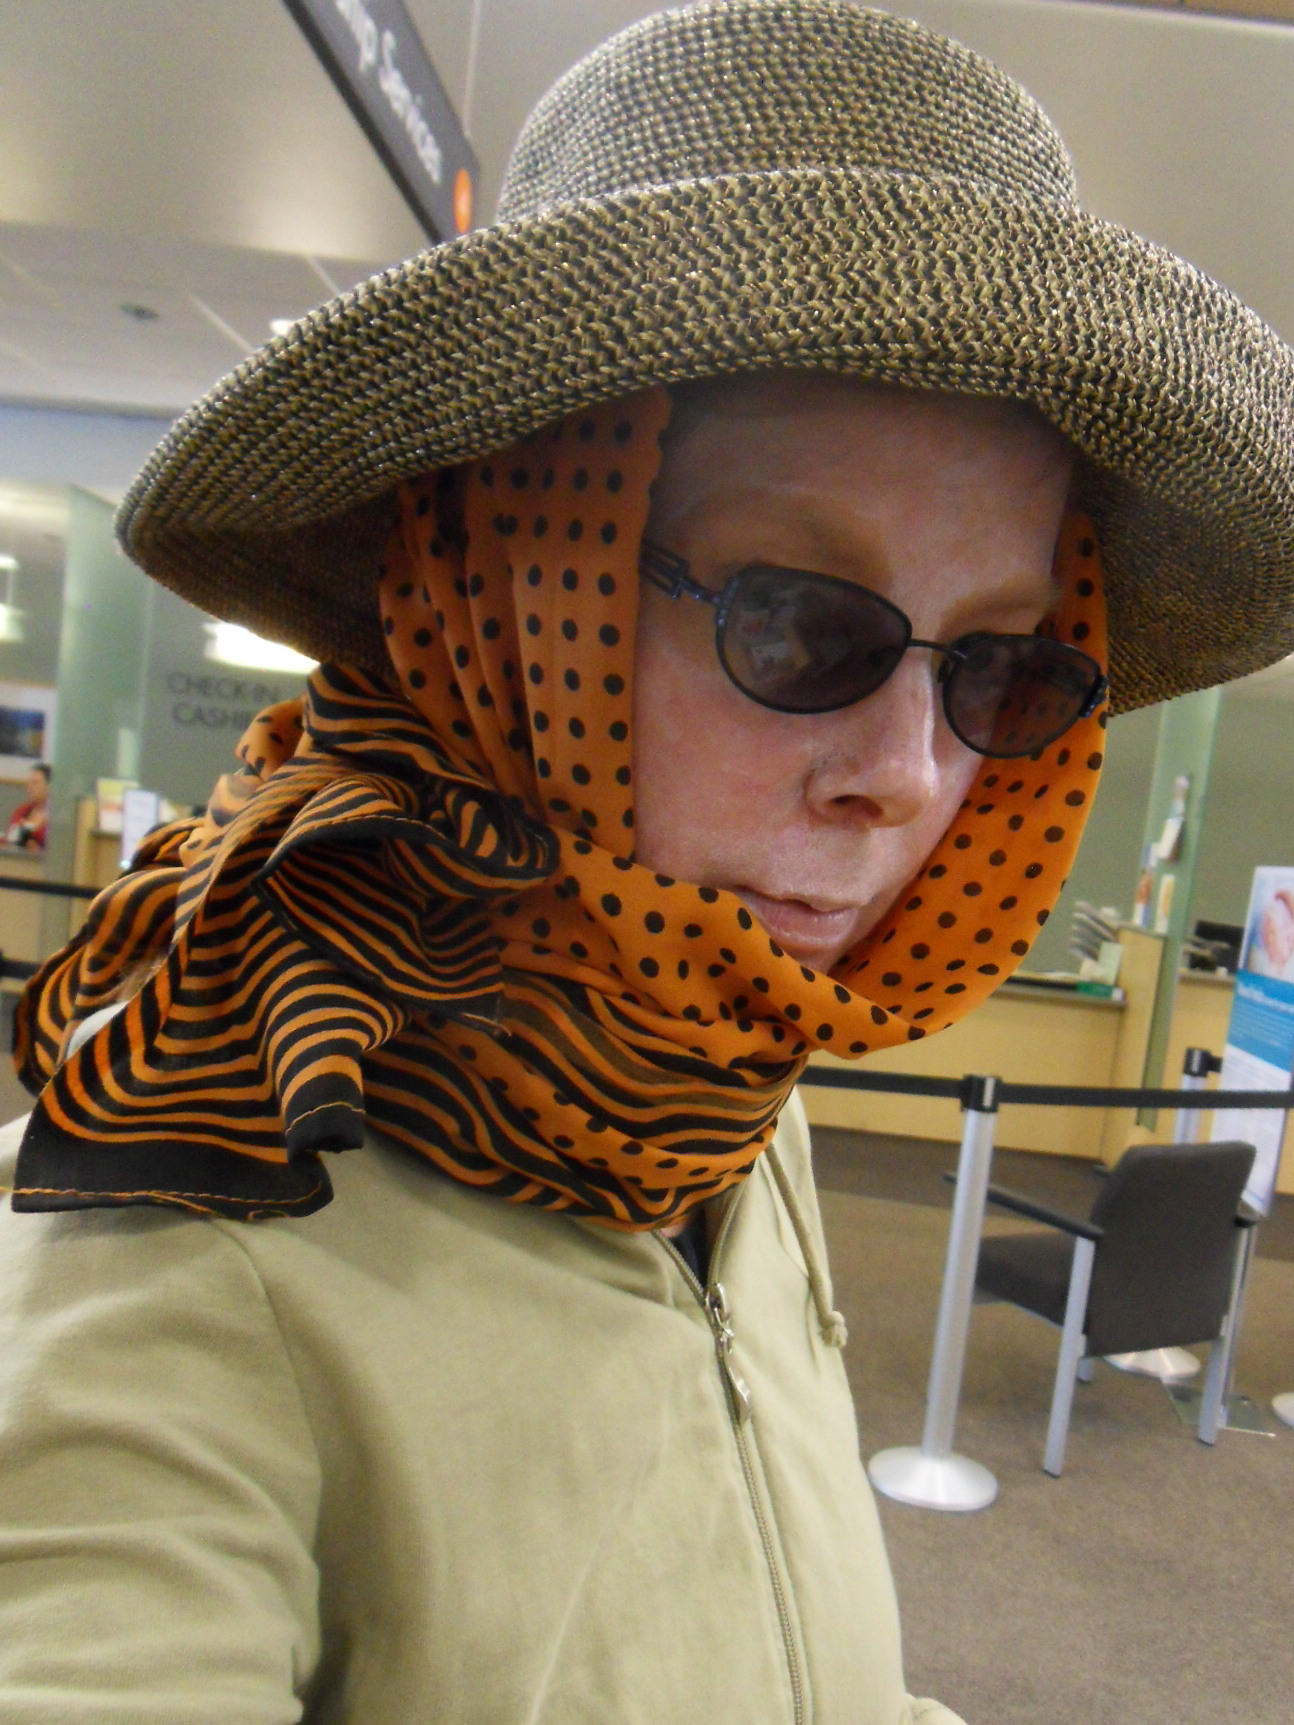 Here I get serious about the sun: hat, huge scarf and zinc oxide